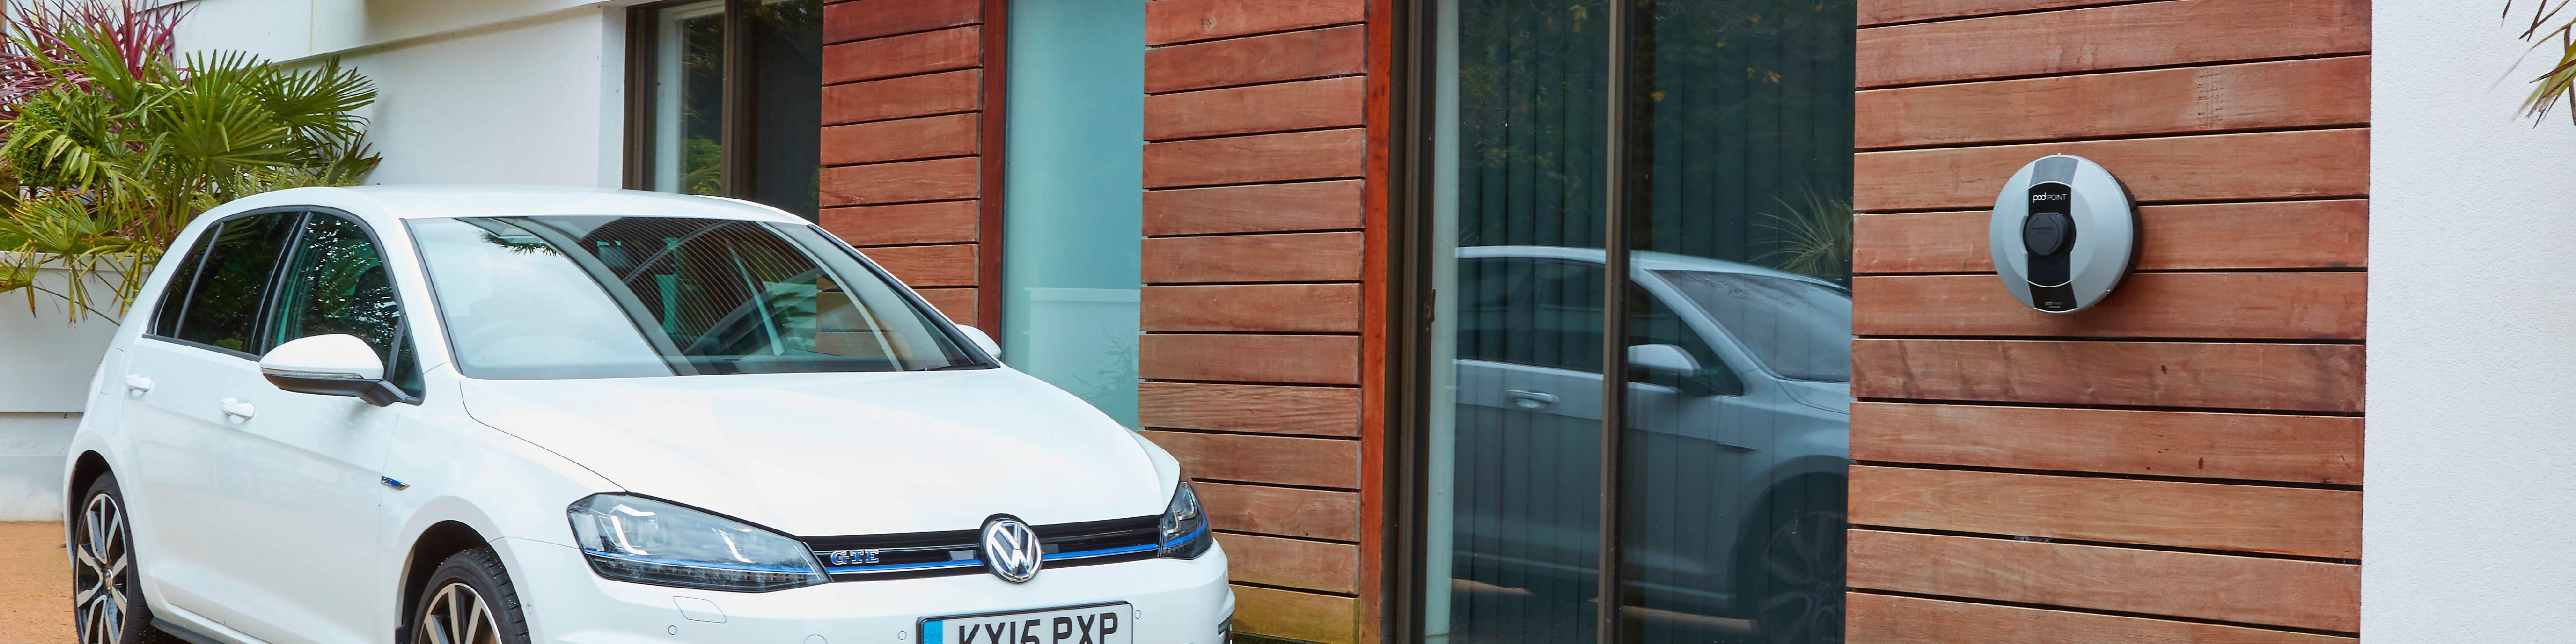 Main image for Preferred Supplier for VW Charging Stations in the UK